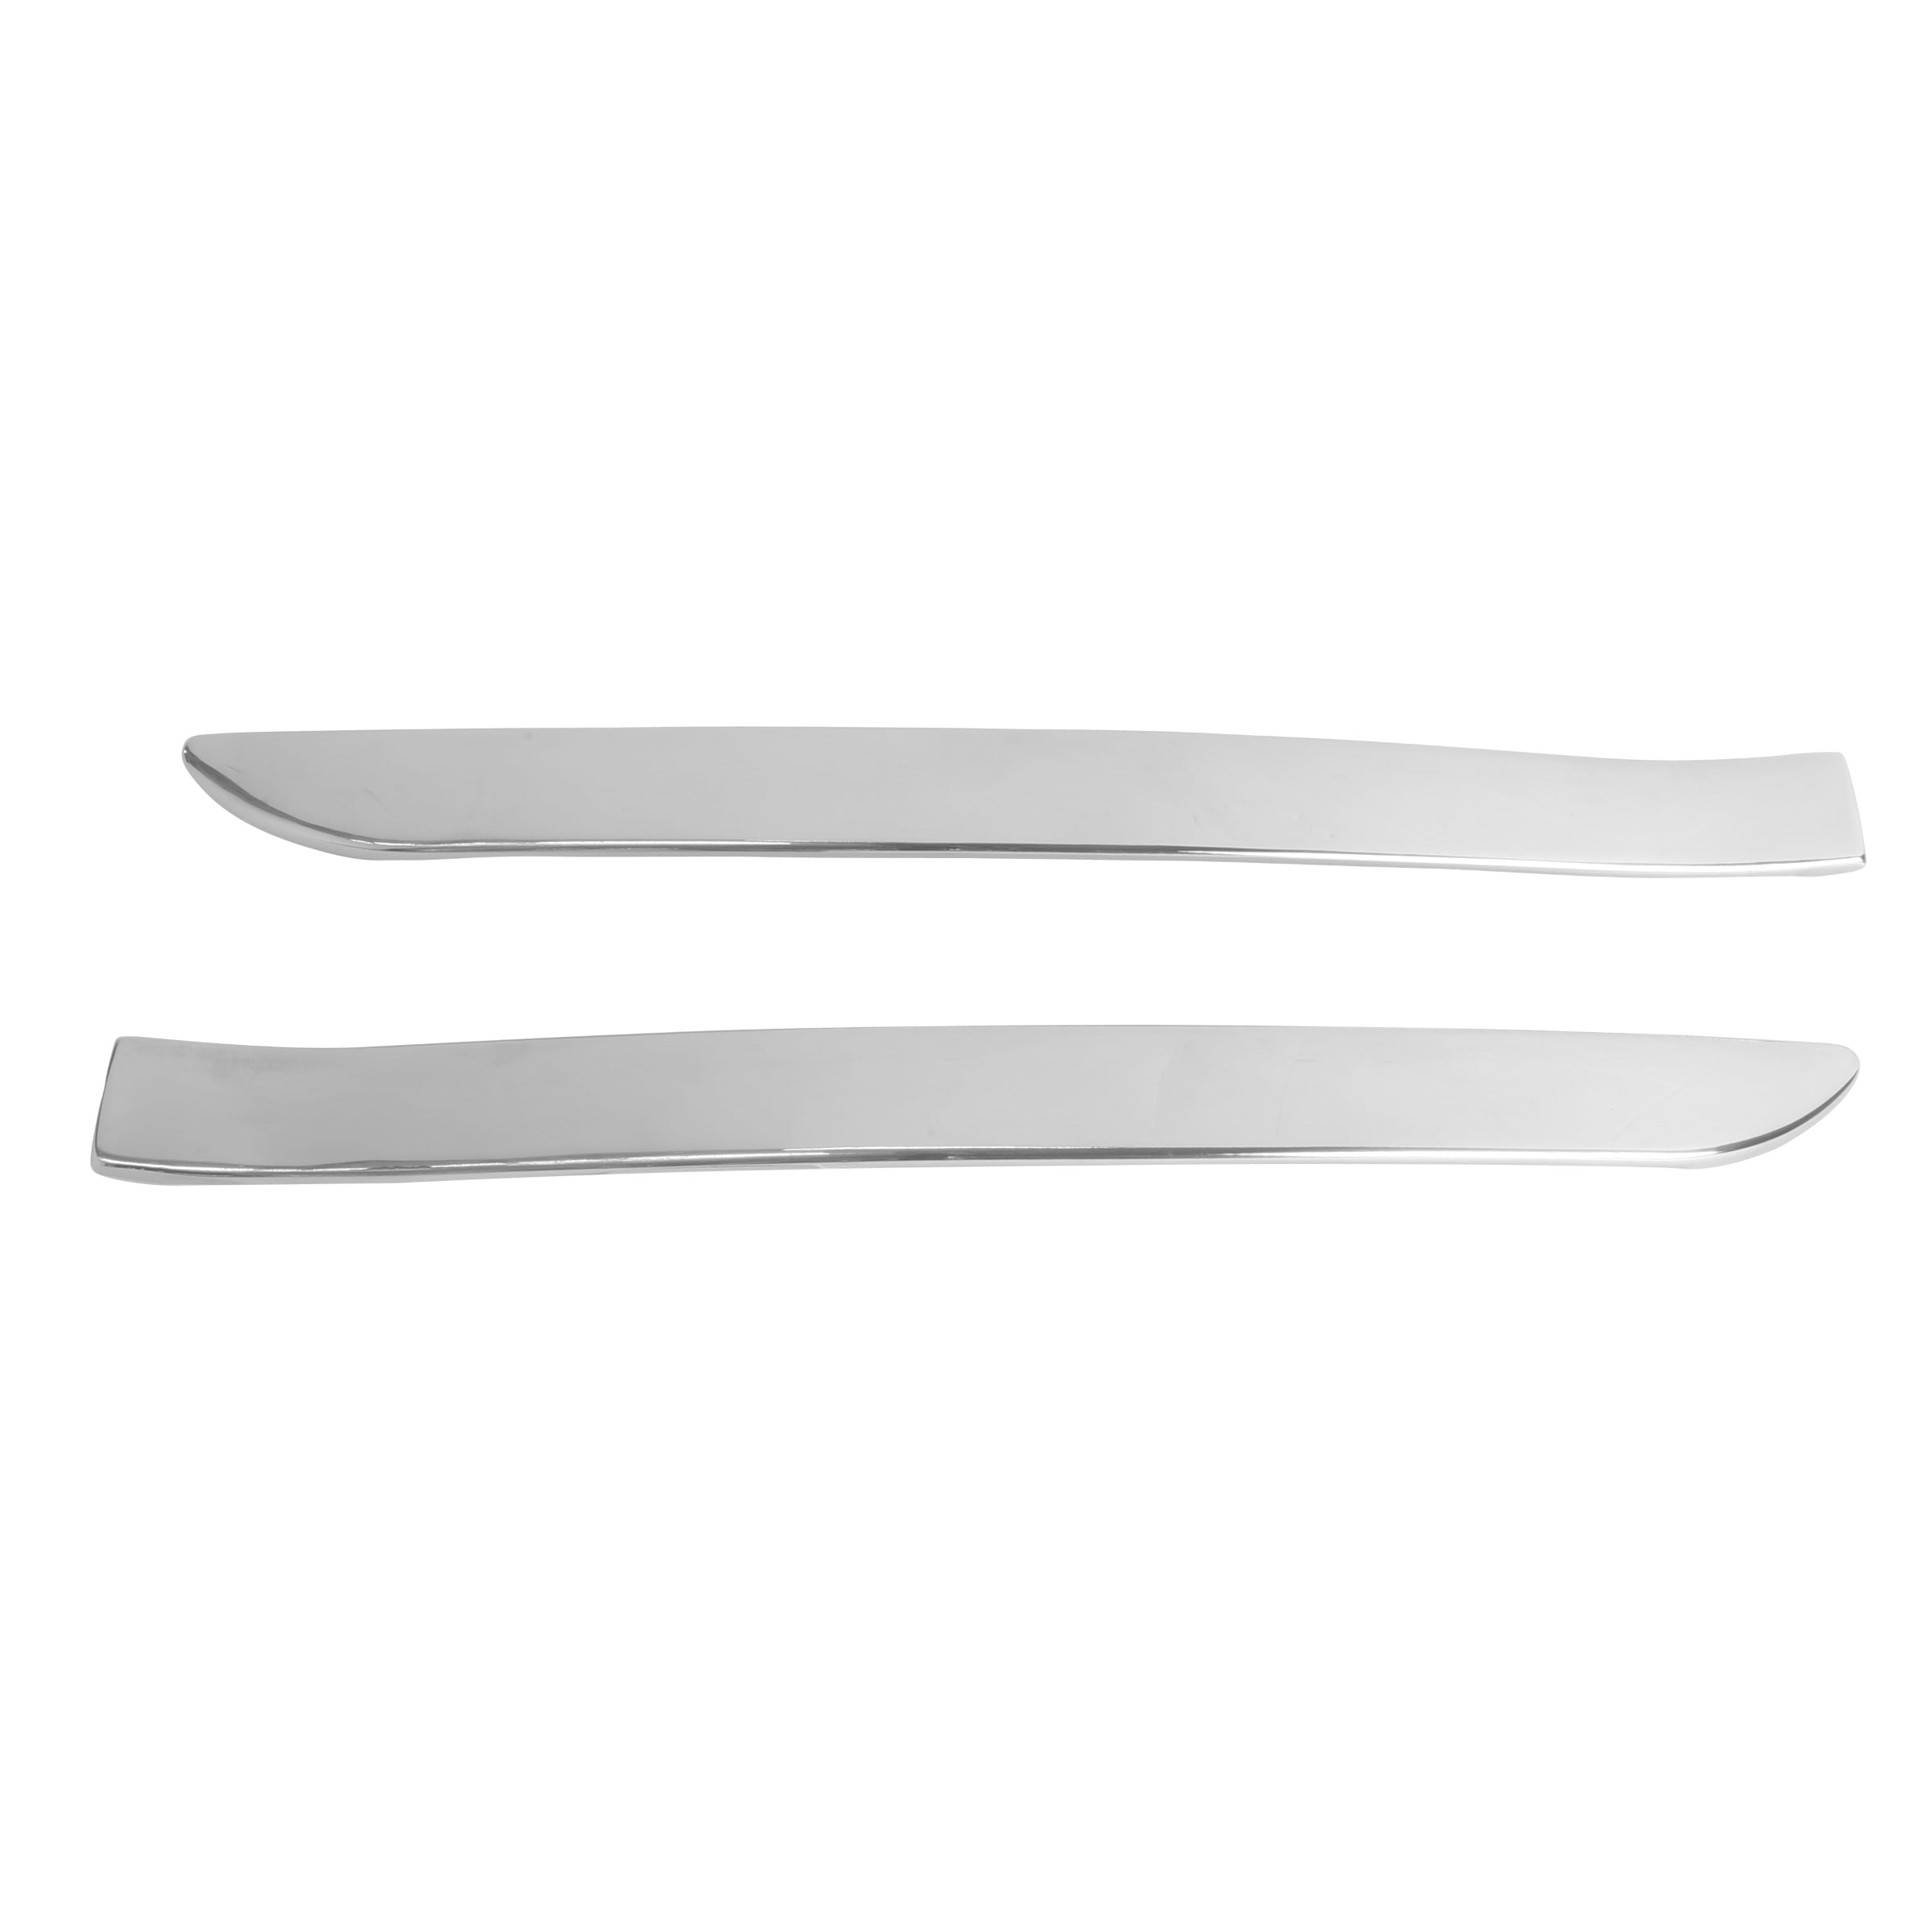 Fender Trim Molding (Front, Lower) • 1947-48 Ford